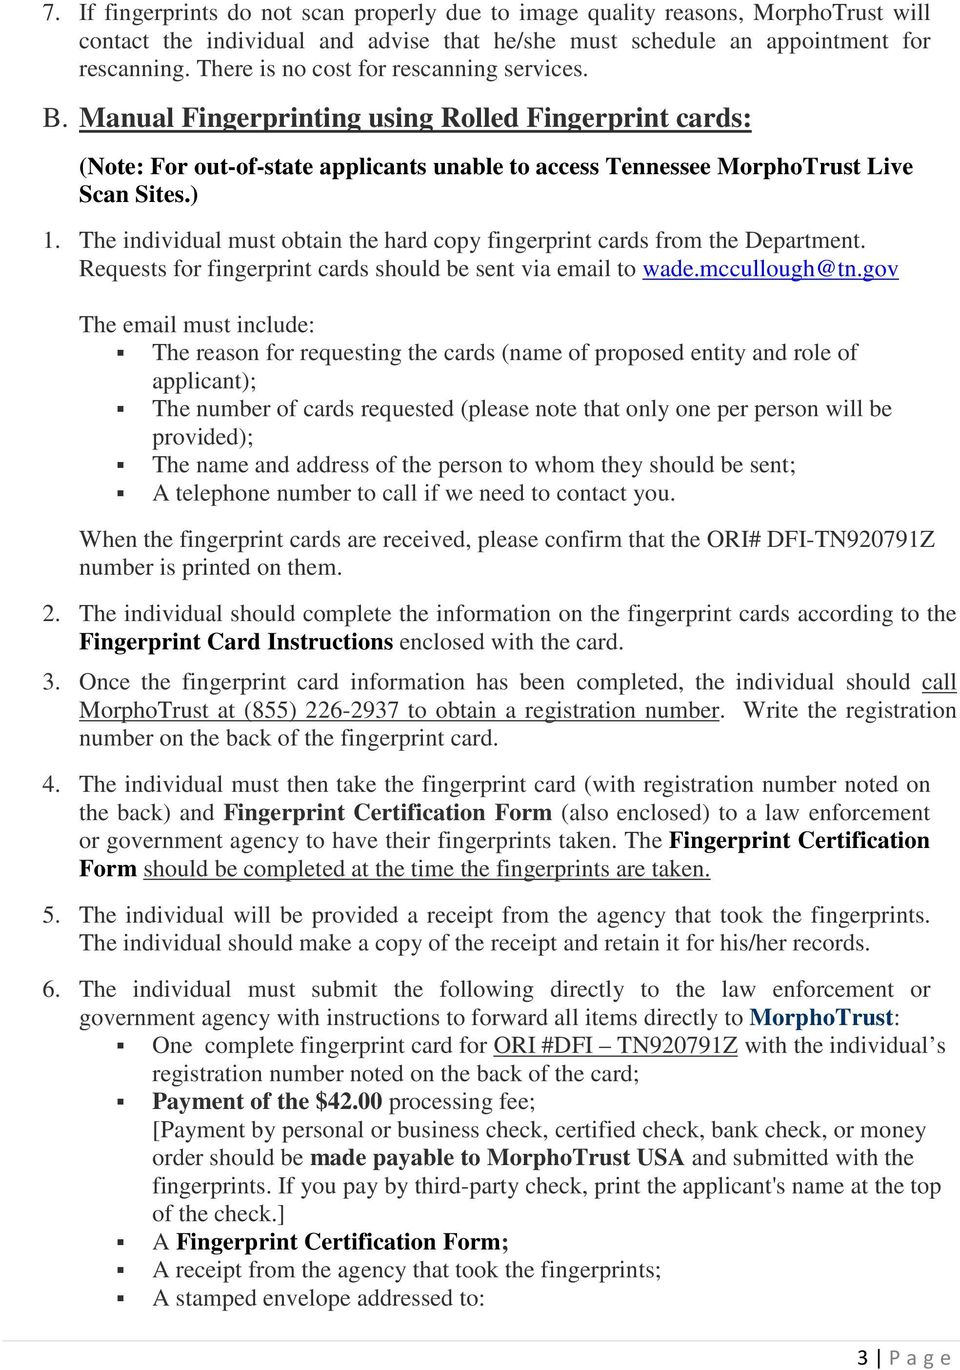 The individual must obtain the hard copy fingerprint cards from the Department. Requests for fingerprint cards should be sent via email to wade.mccullough@tn.